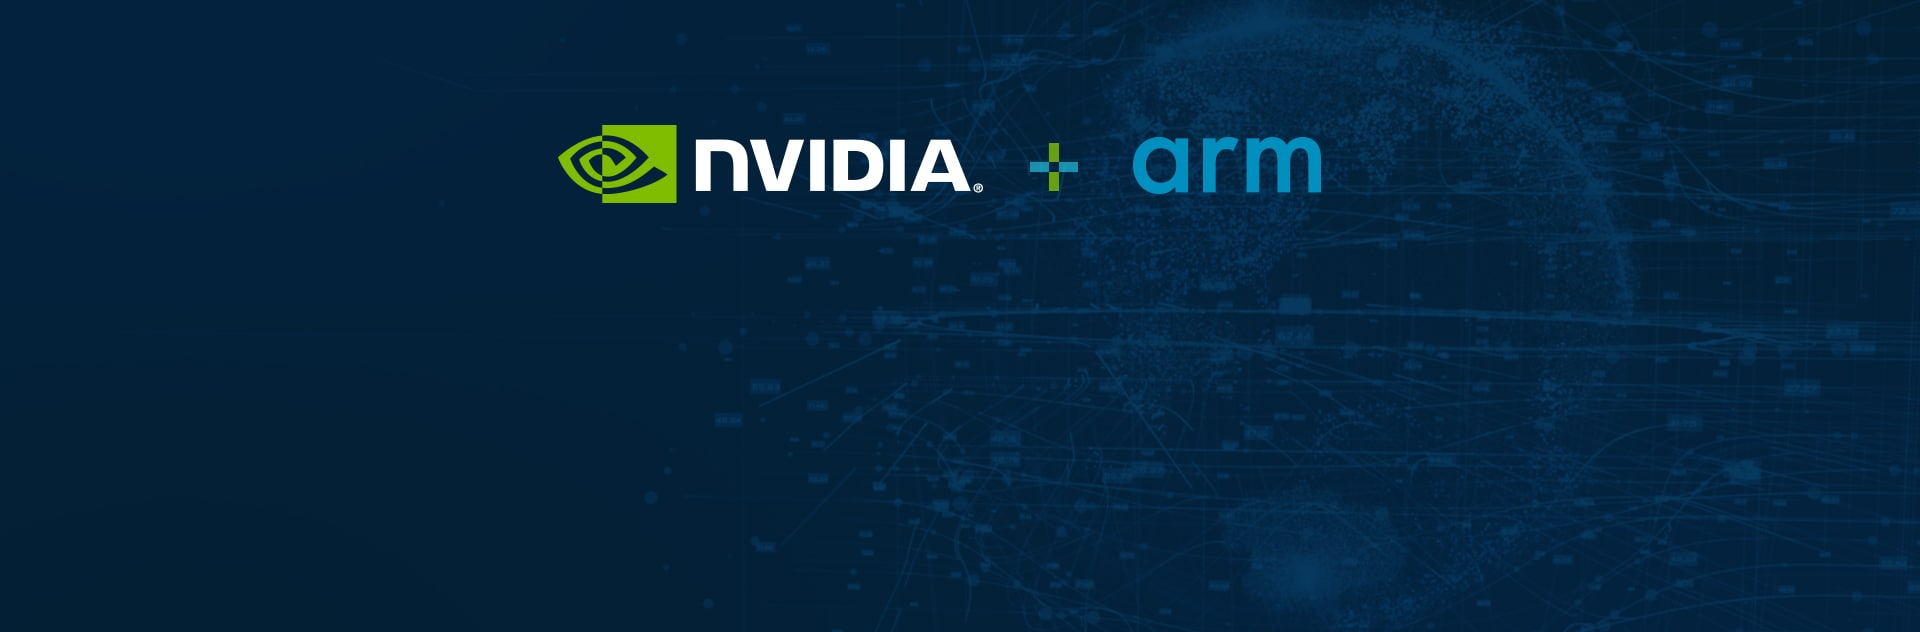 Banner with NVIDIA and Arm logos